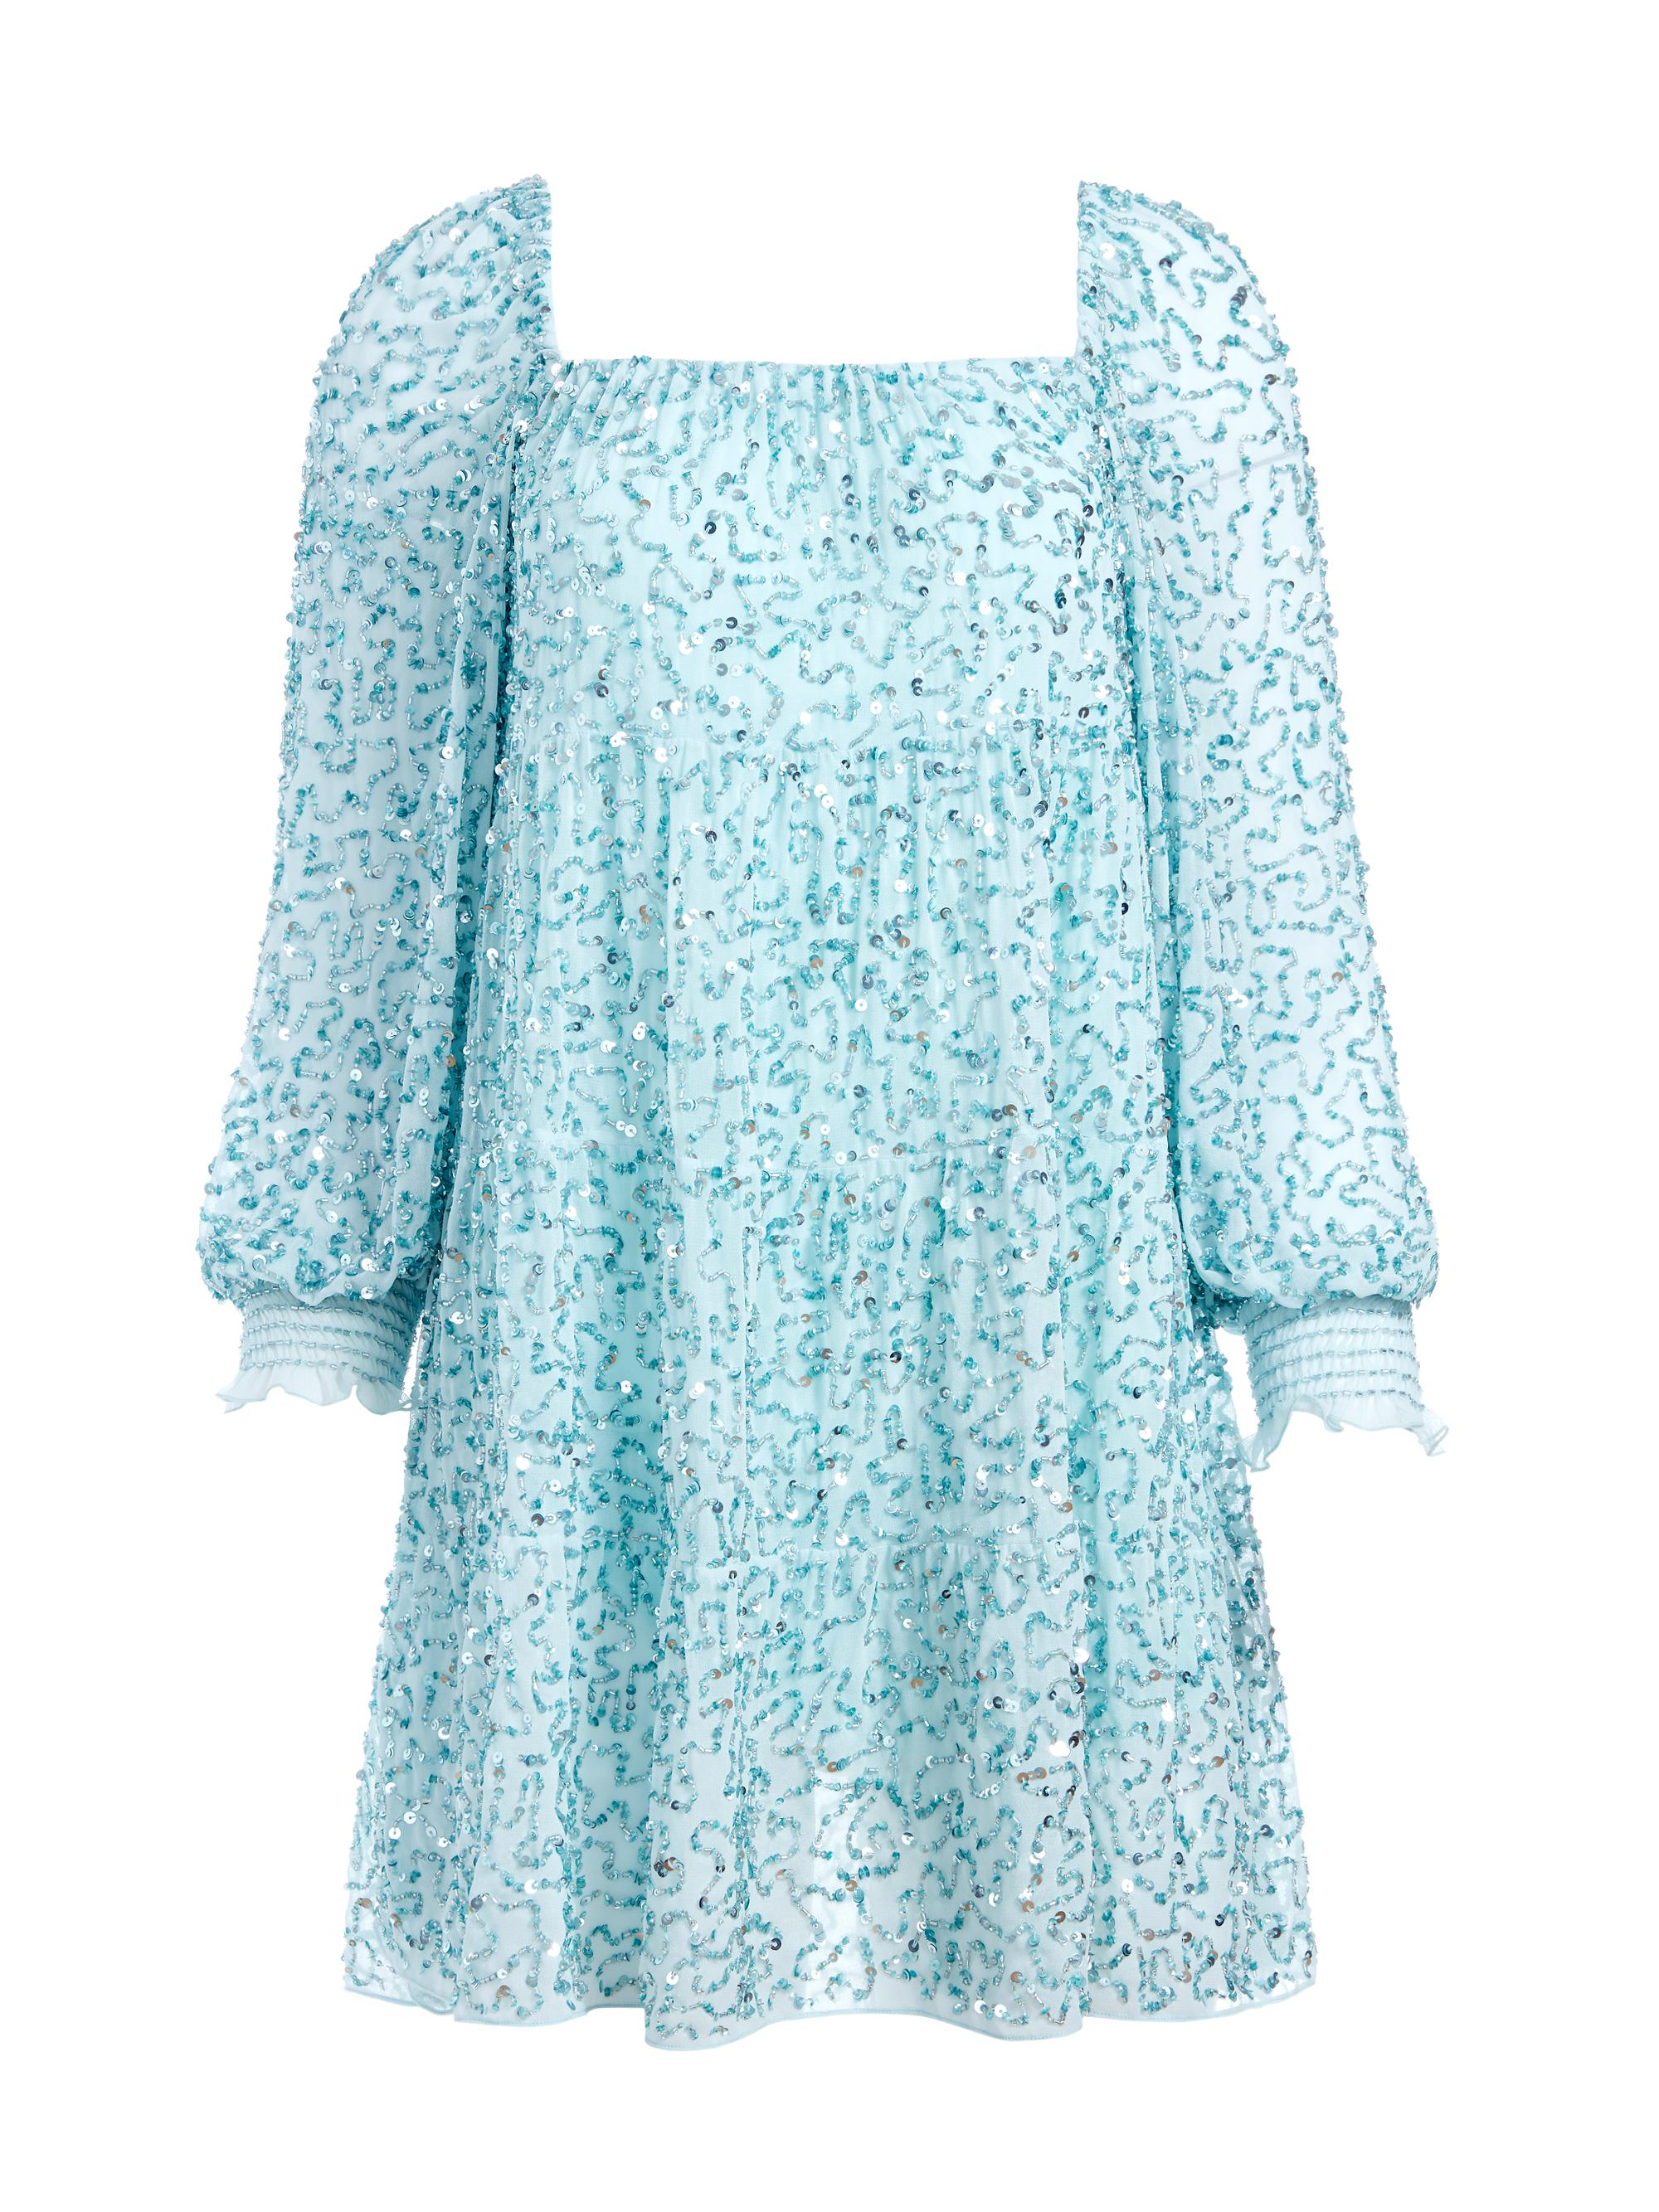 ROWEN SEQUIN EMBROIDERED MINI DRESS 6